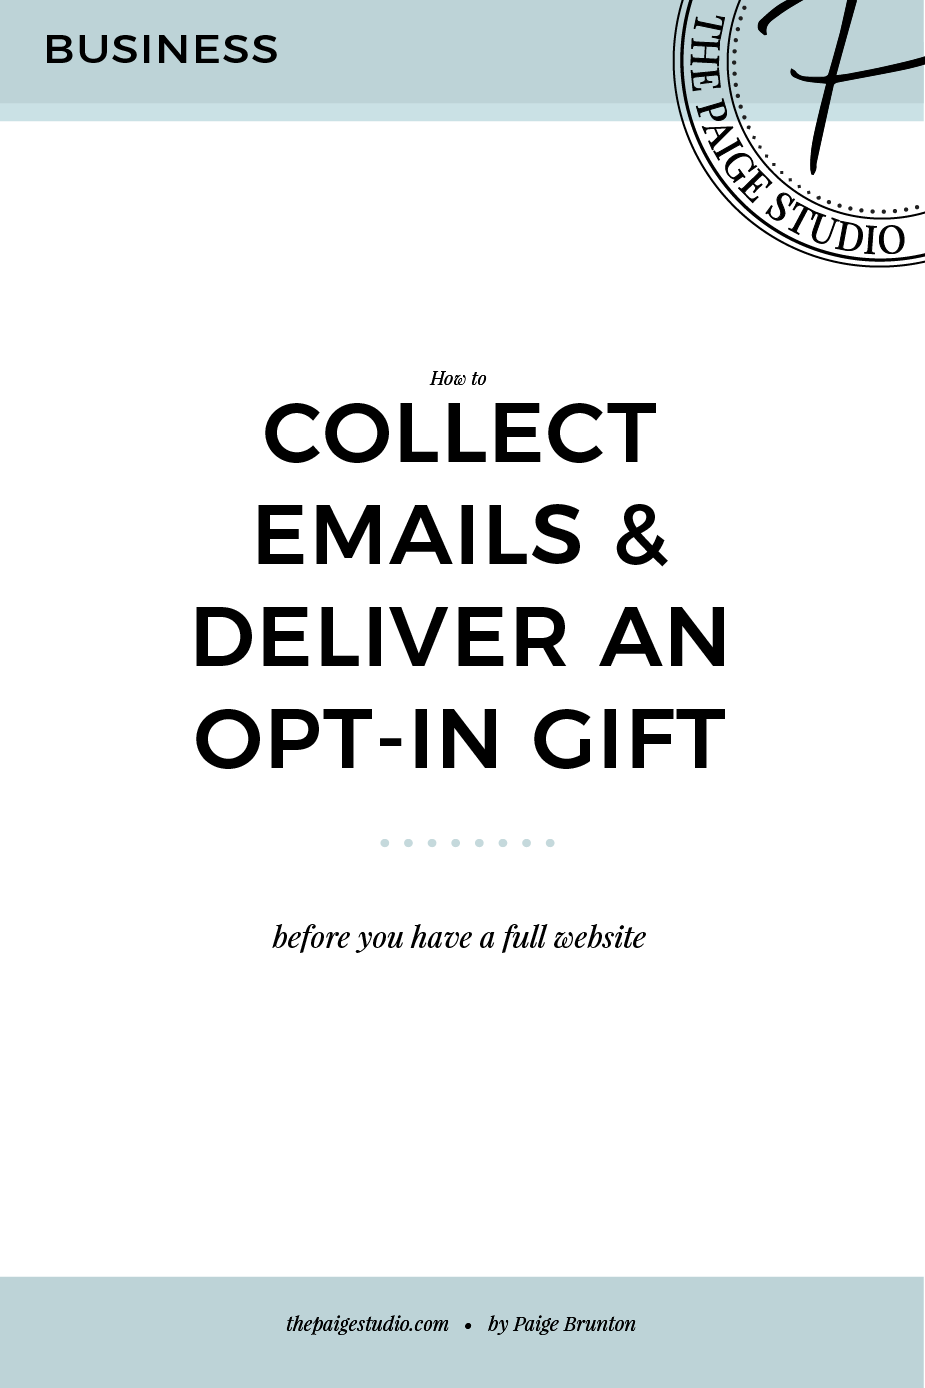 How to collect emails and send an opt-in gift, before you